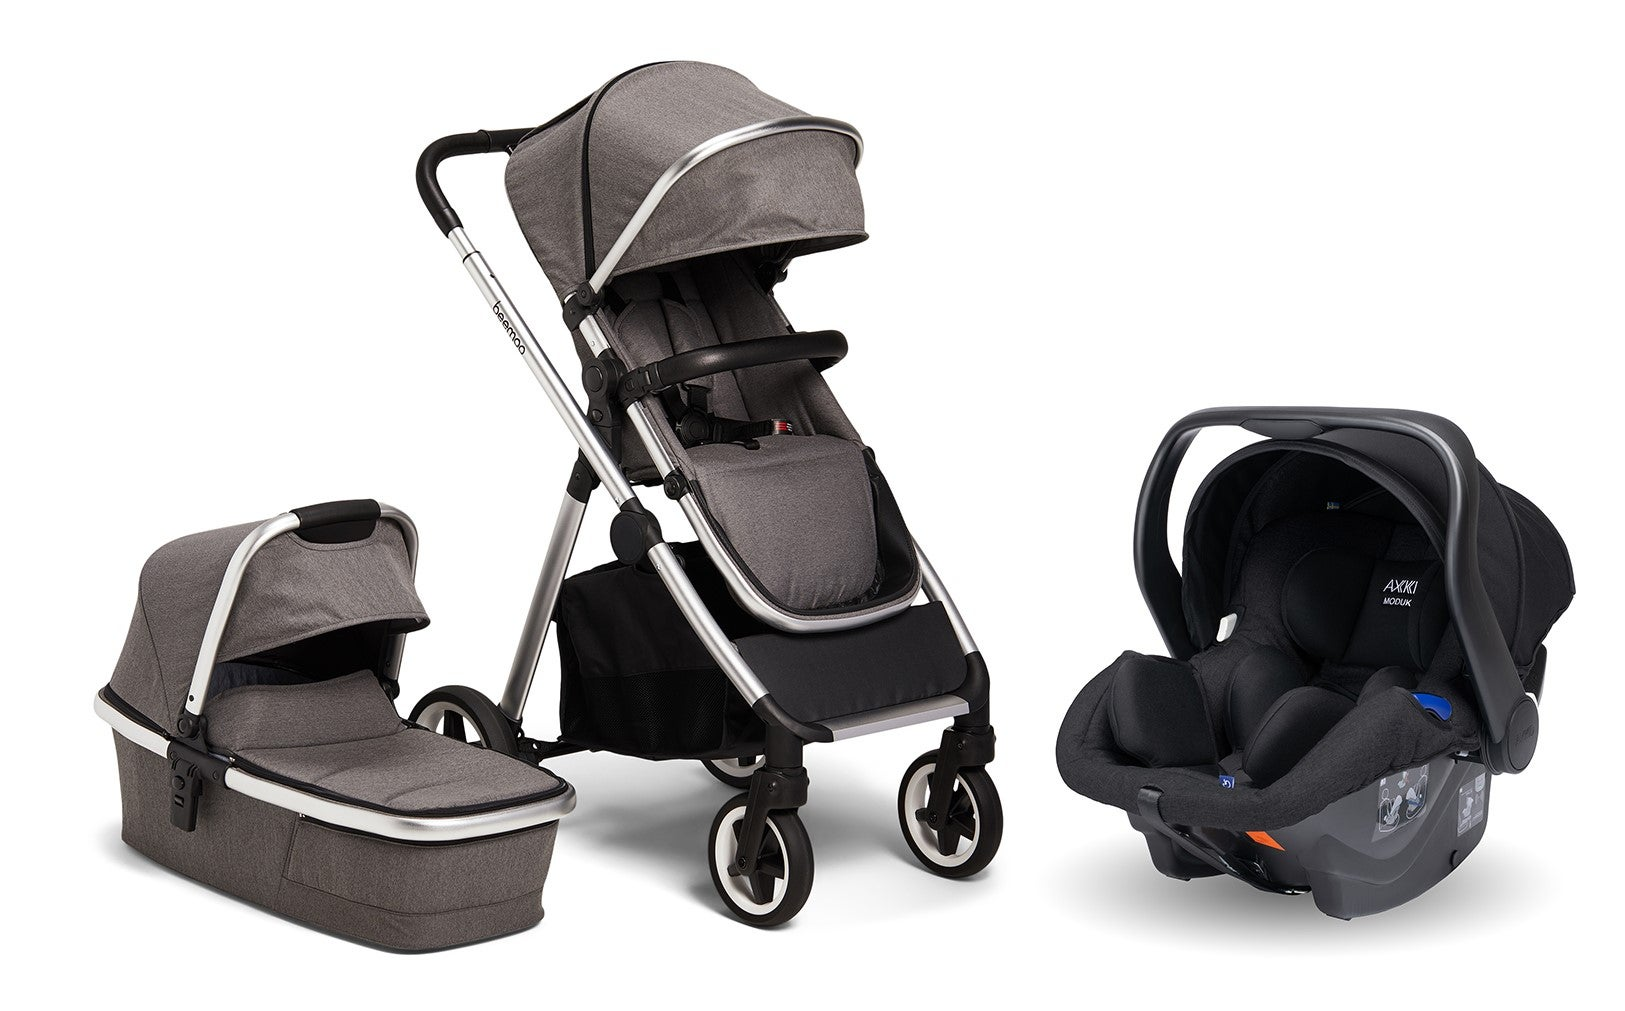 Beemoo Pro Duo Duovagn Inkl. Axkid Modukid Infant Babyskydd, Grey